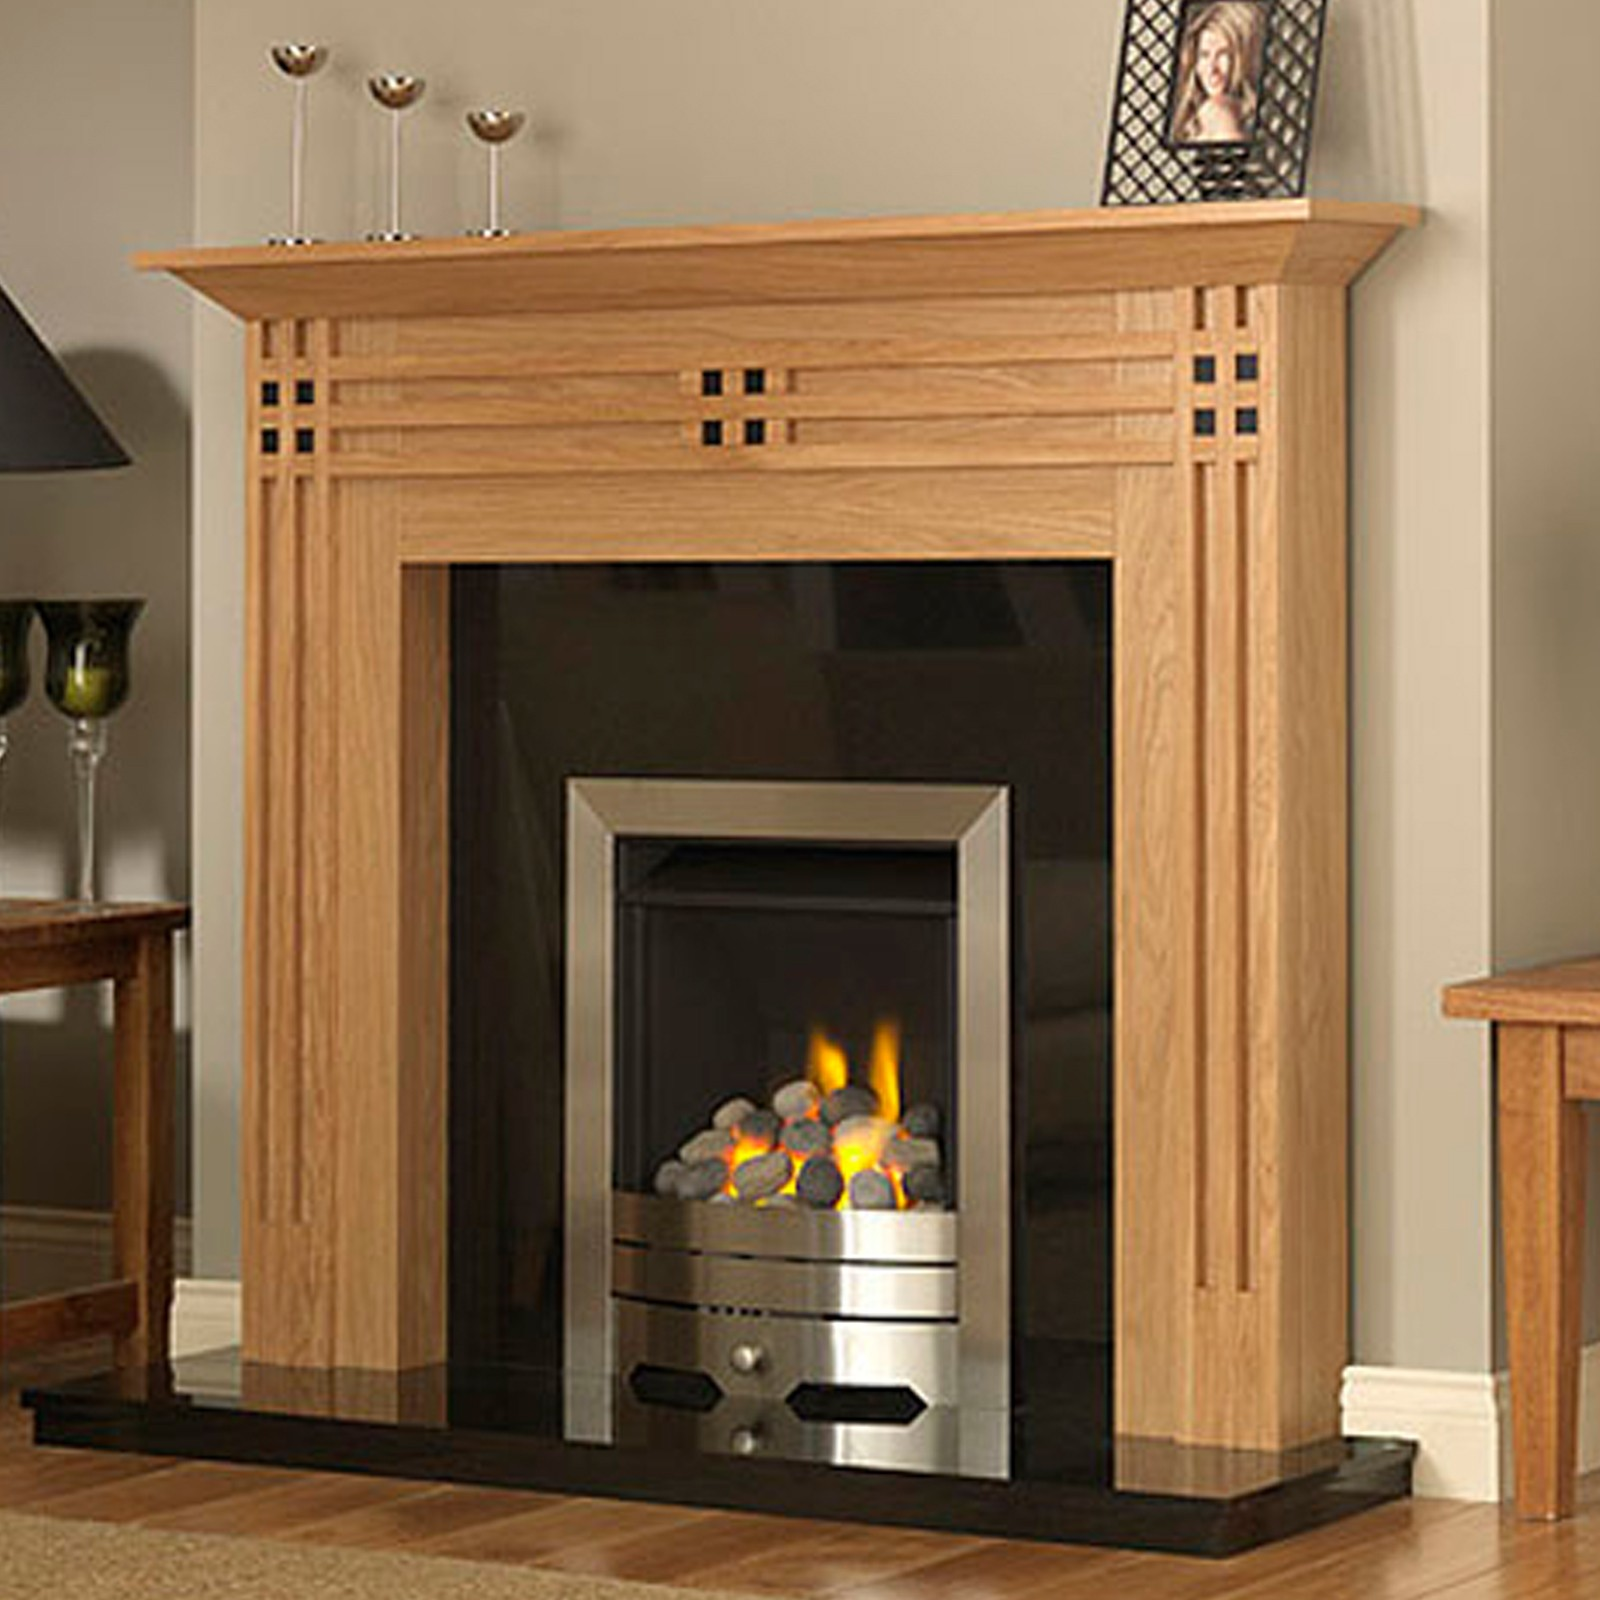 Unbeatable uk prices gb mantels chessington fireplace